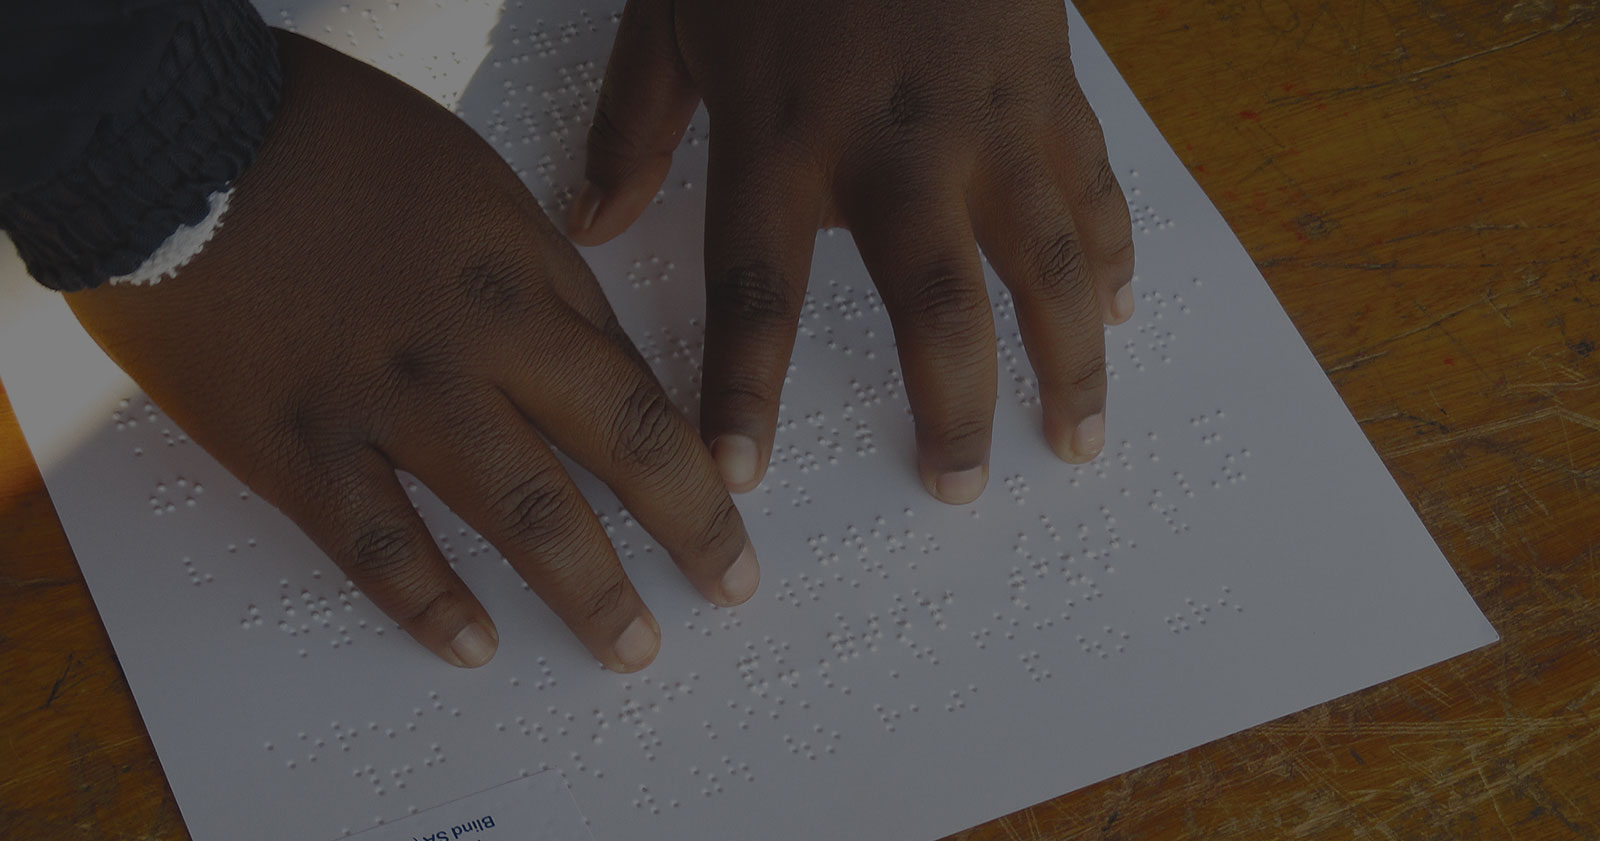 Little boy's hands, reading a braille page on a scratched school desk.